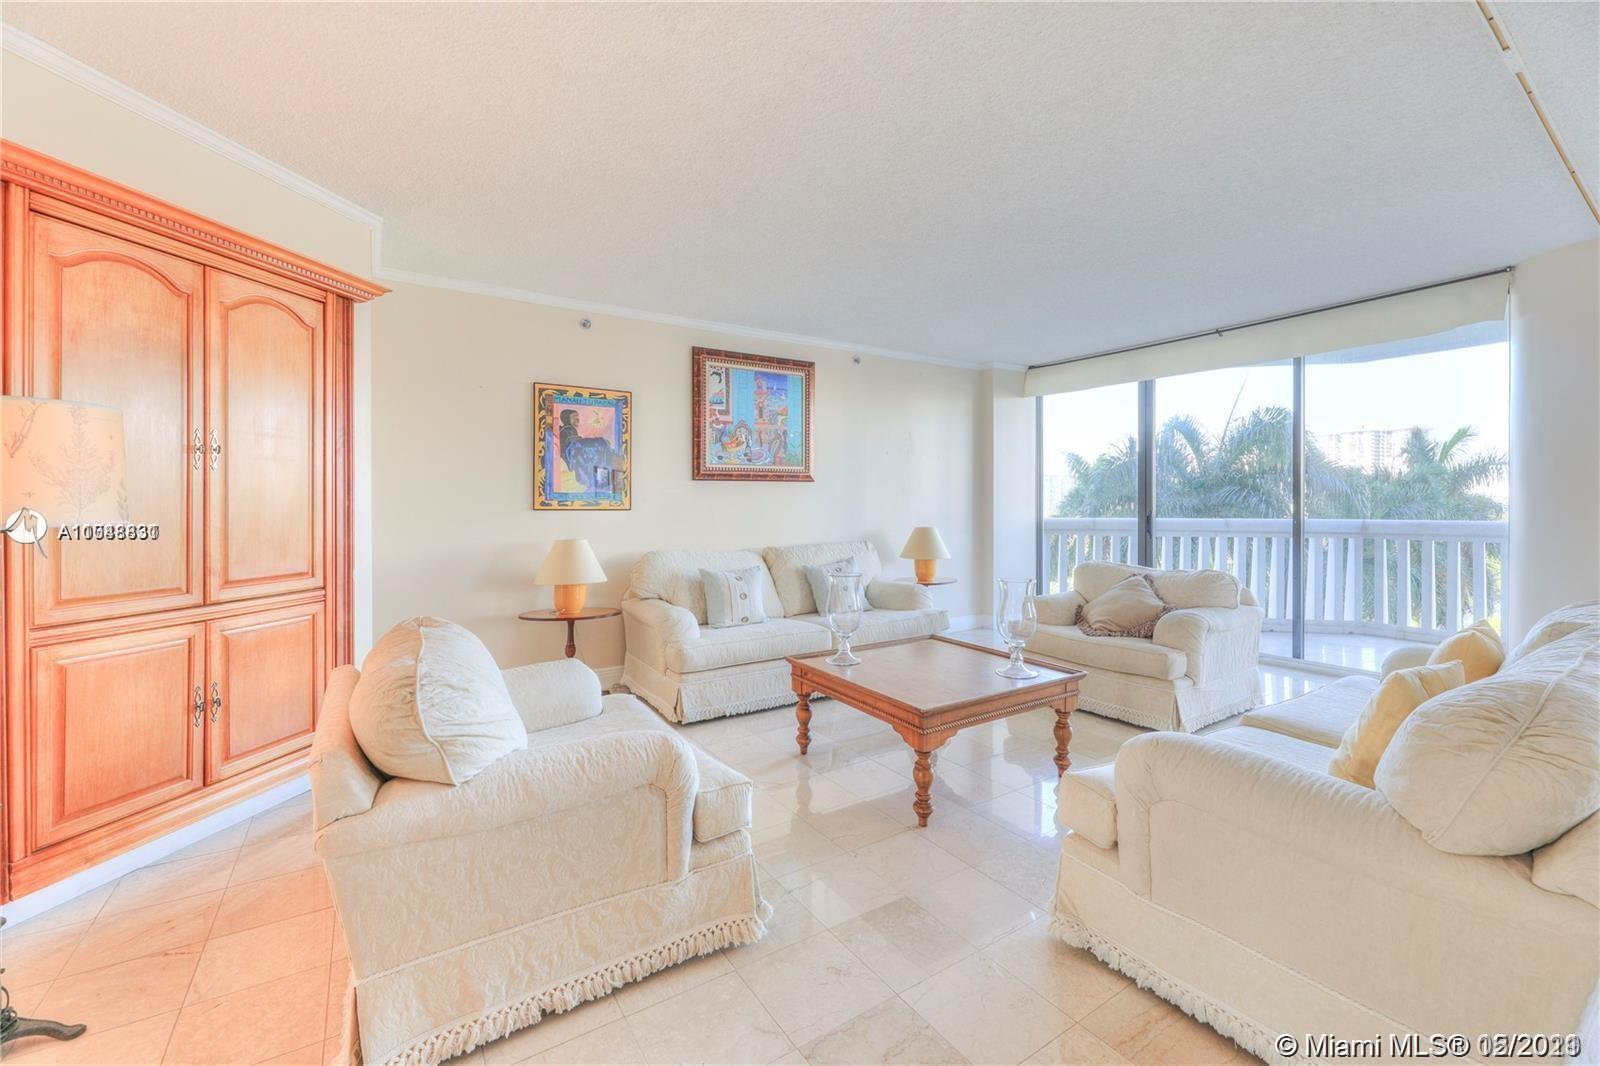 SPACIOUS, LIGHT AND BRIGHT FLOW THRU UNIT IN THE BEAUTIFULLY RENOVATED 2000 BUILDING AT WILLIAMS ISL